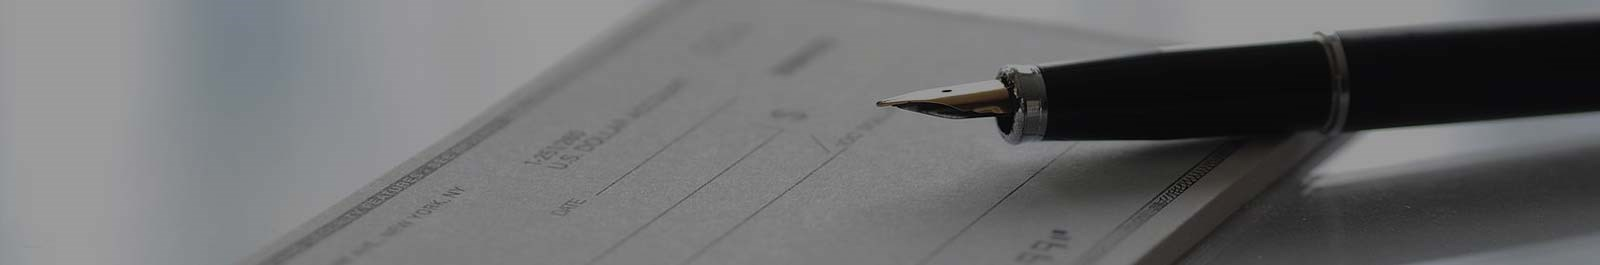 Header image - closeup of a pen and checkbook